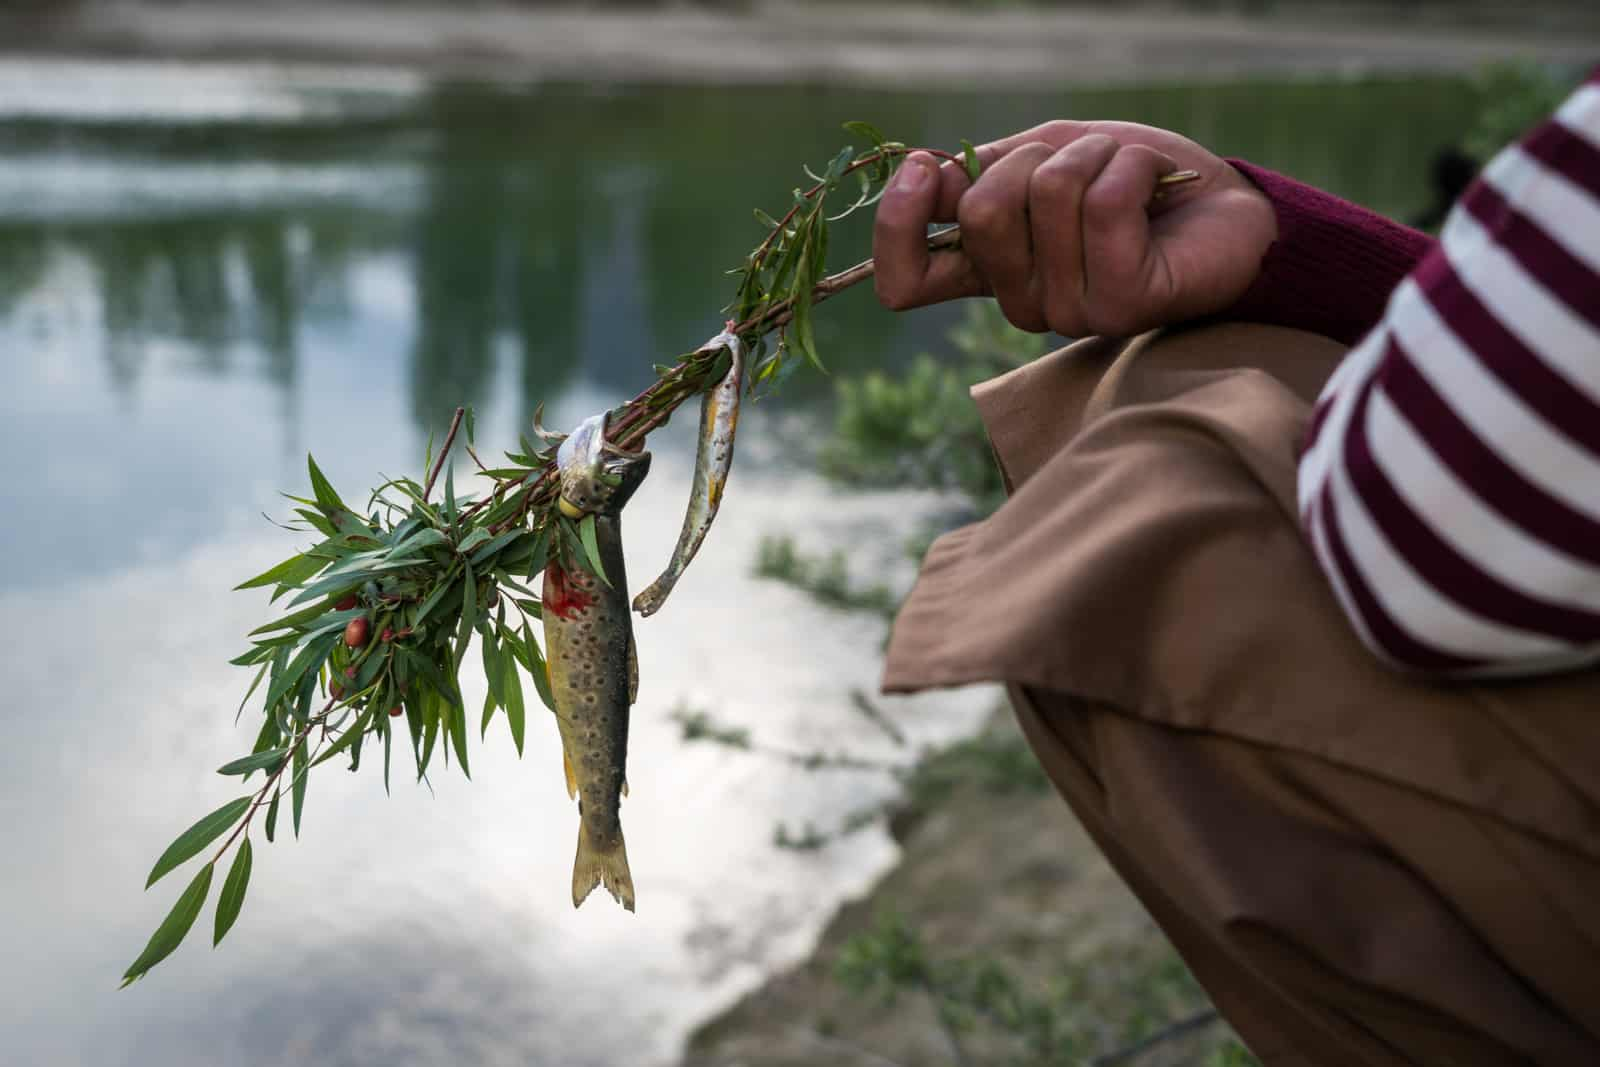 Phander Valley travel guide - Trout fish on a stick with a hand - Lost With Purpose travel blog